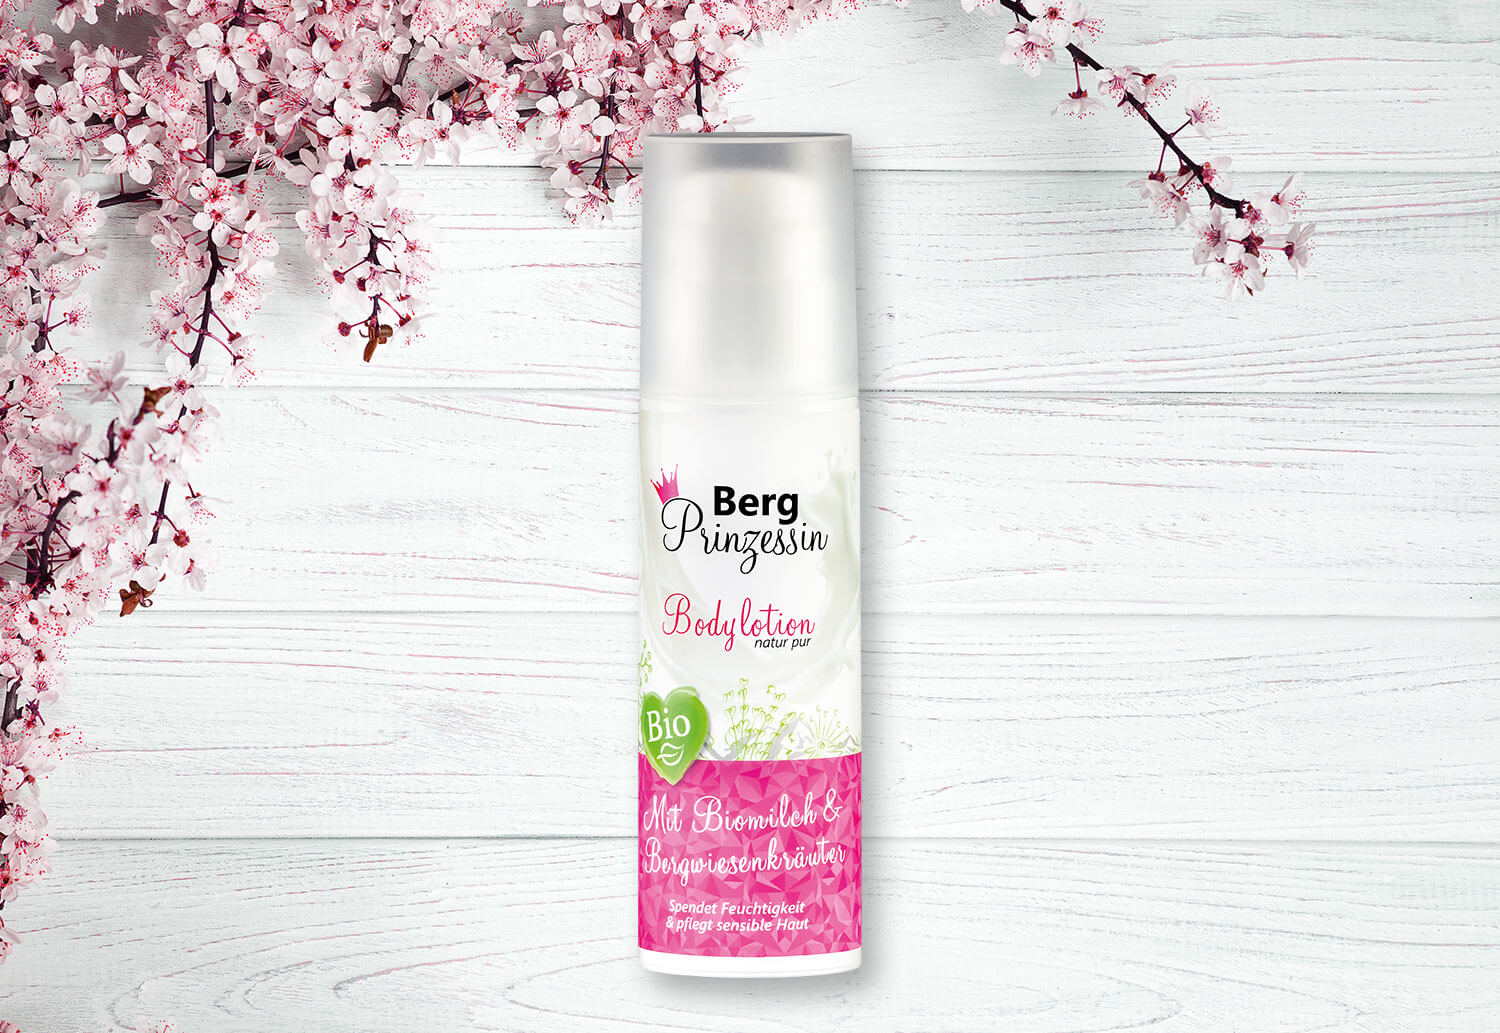 BergPrinzessin - Bodylotion